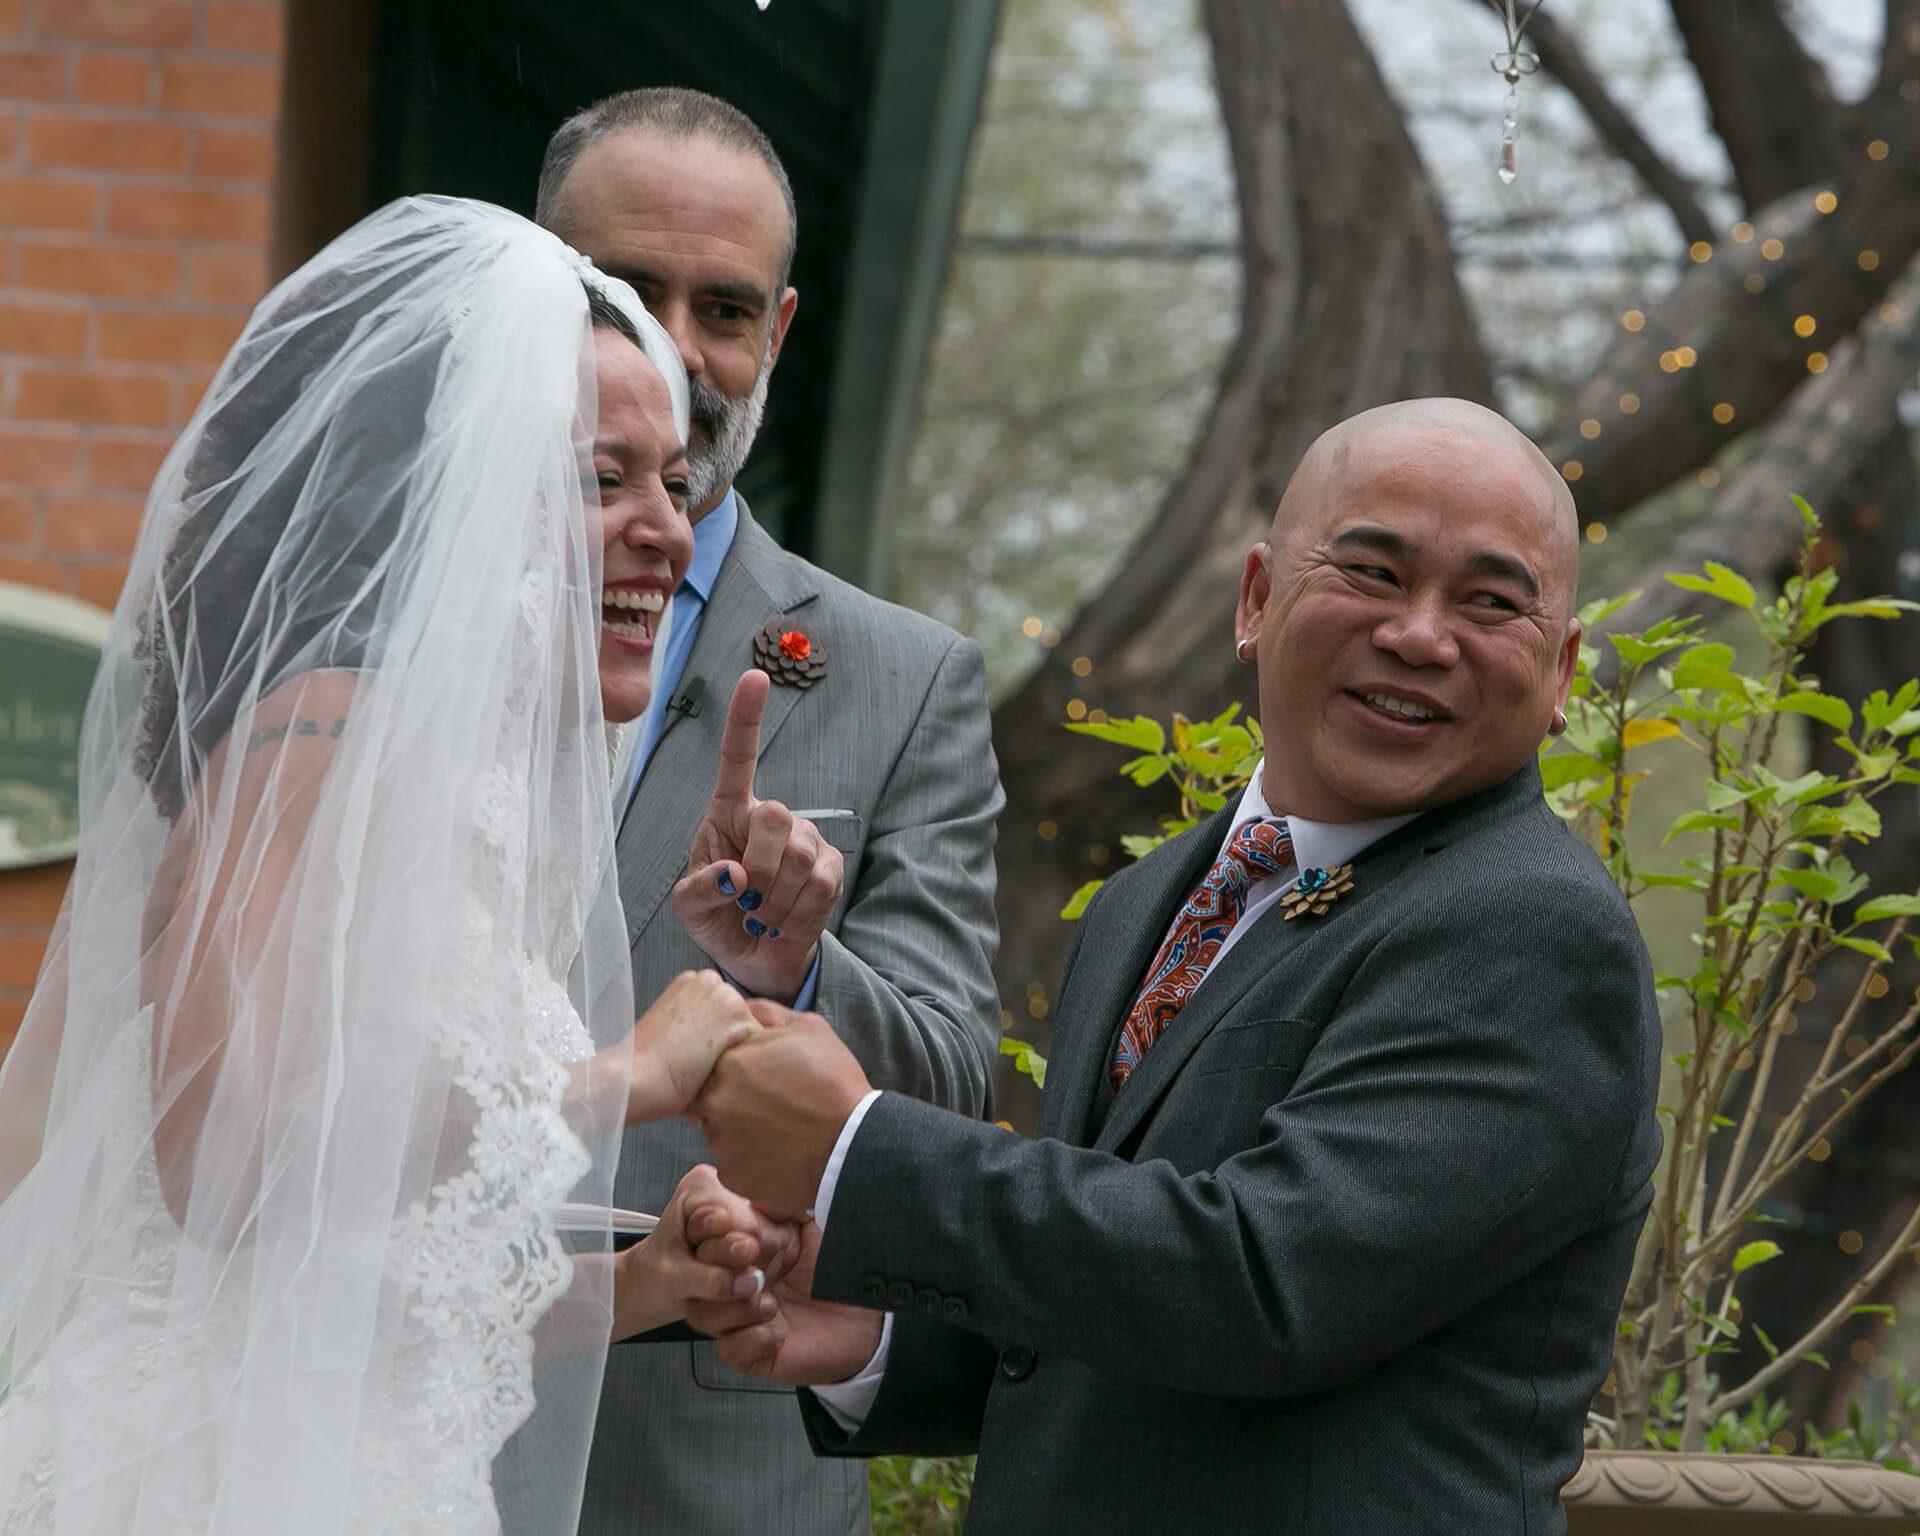 The minister jokingly admonishs the groom who tries to kiss his bride prematurely in the ceremony. The couple and their guests laughed with joy and playfulness.